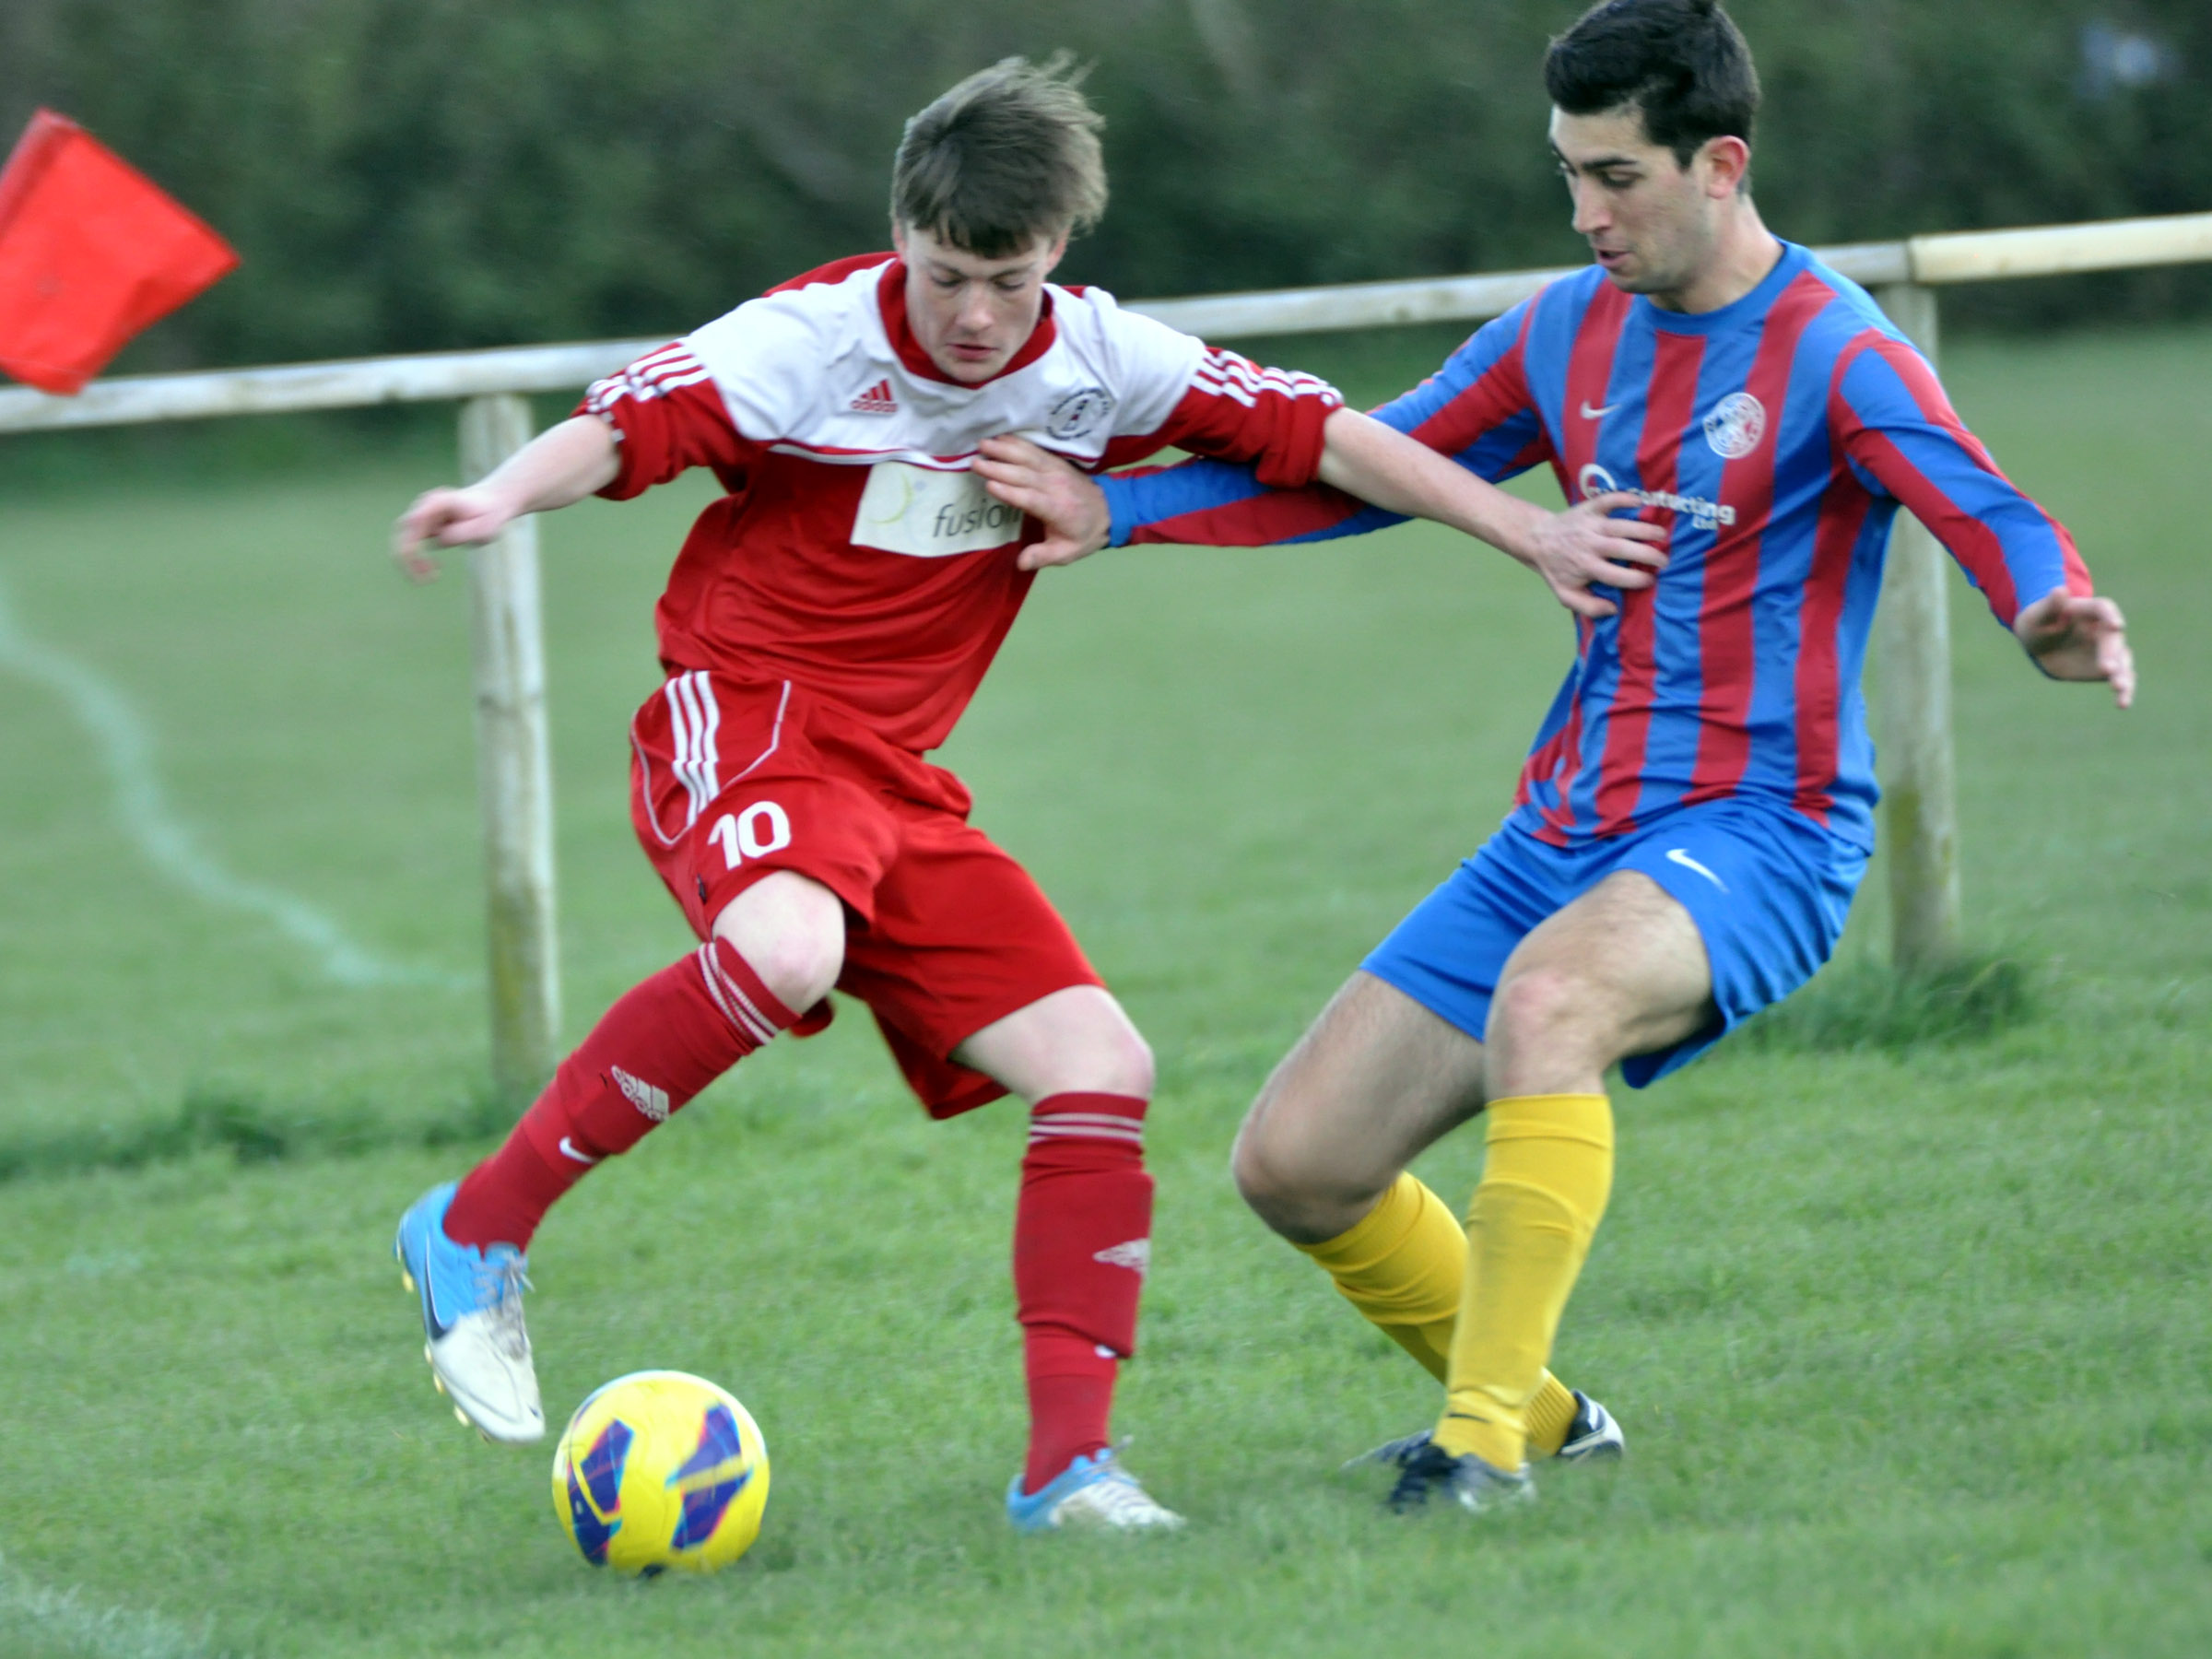 'Freak goal' gives league leaders win at Burnham